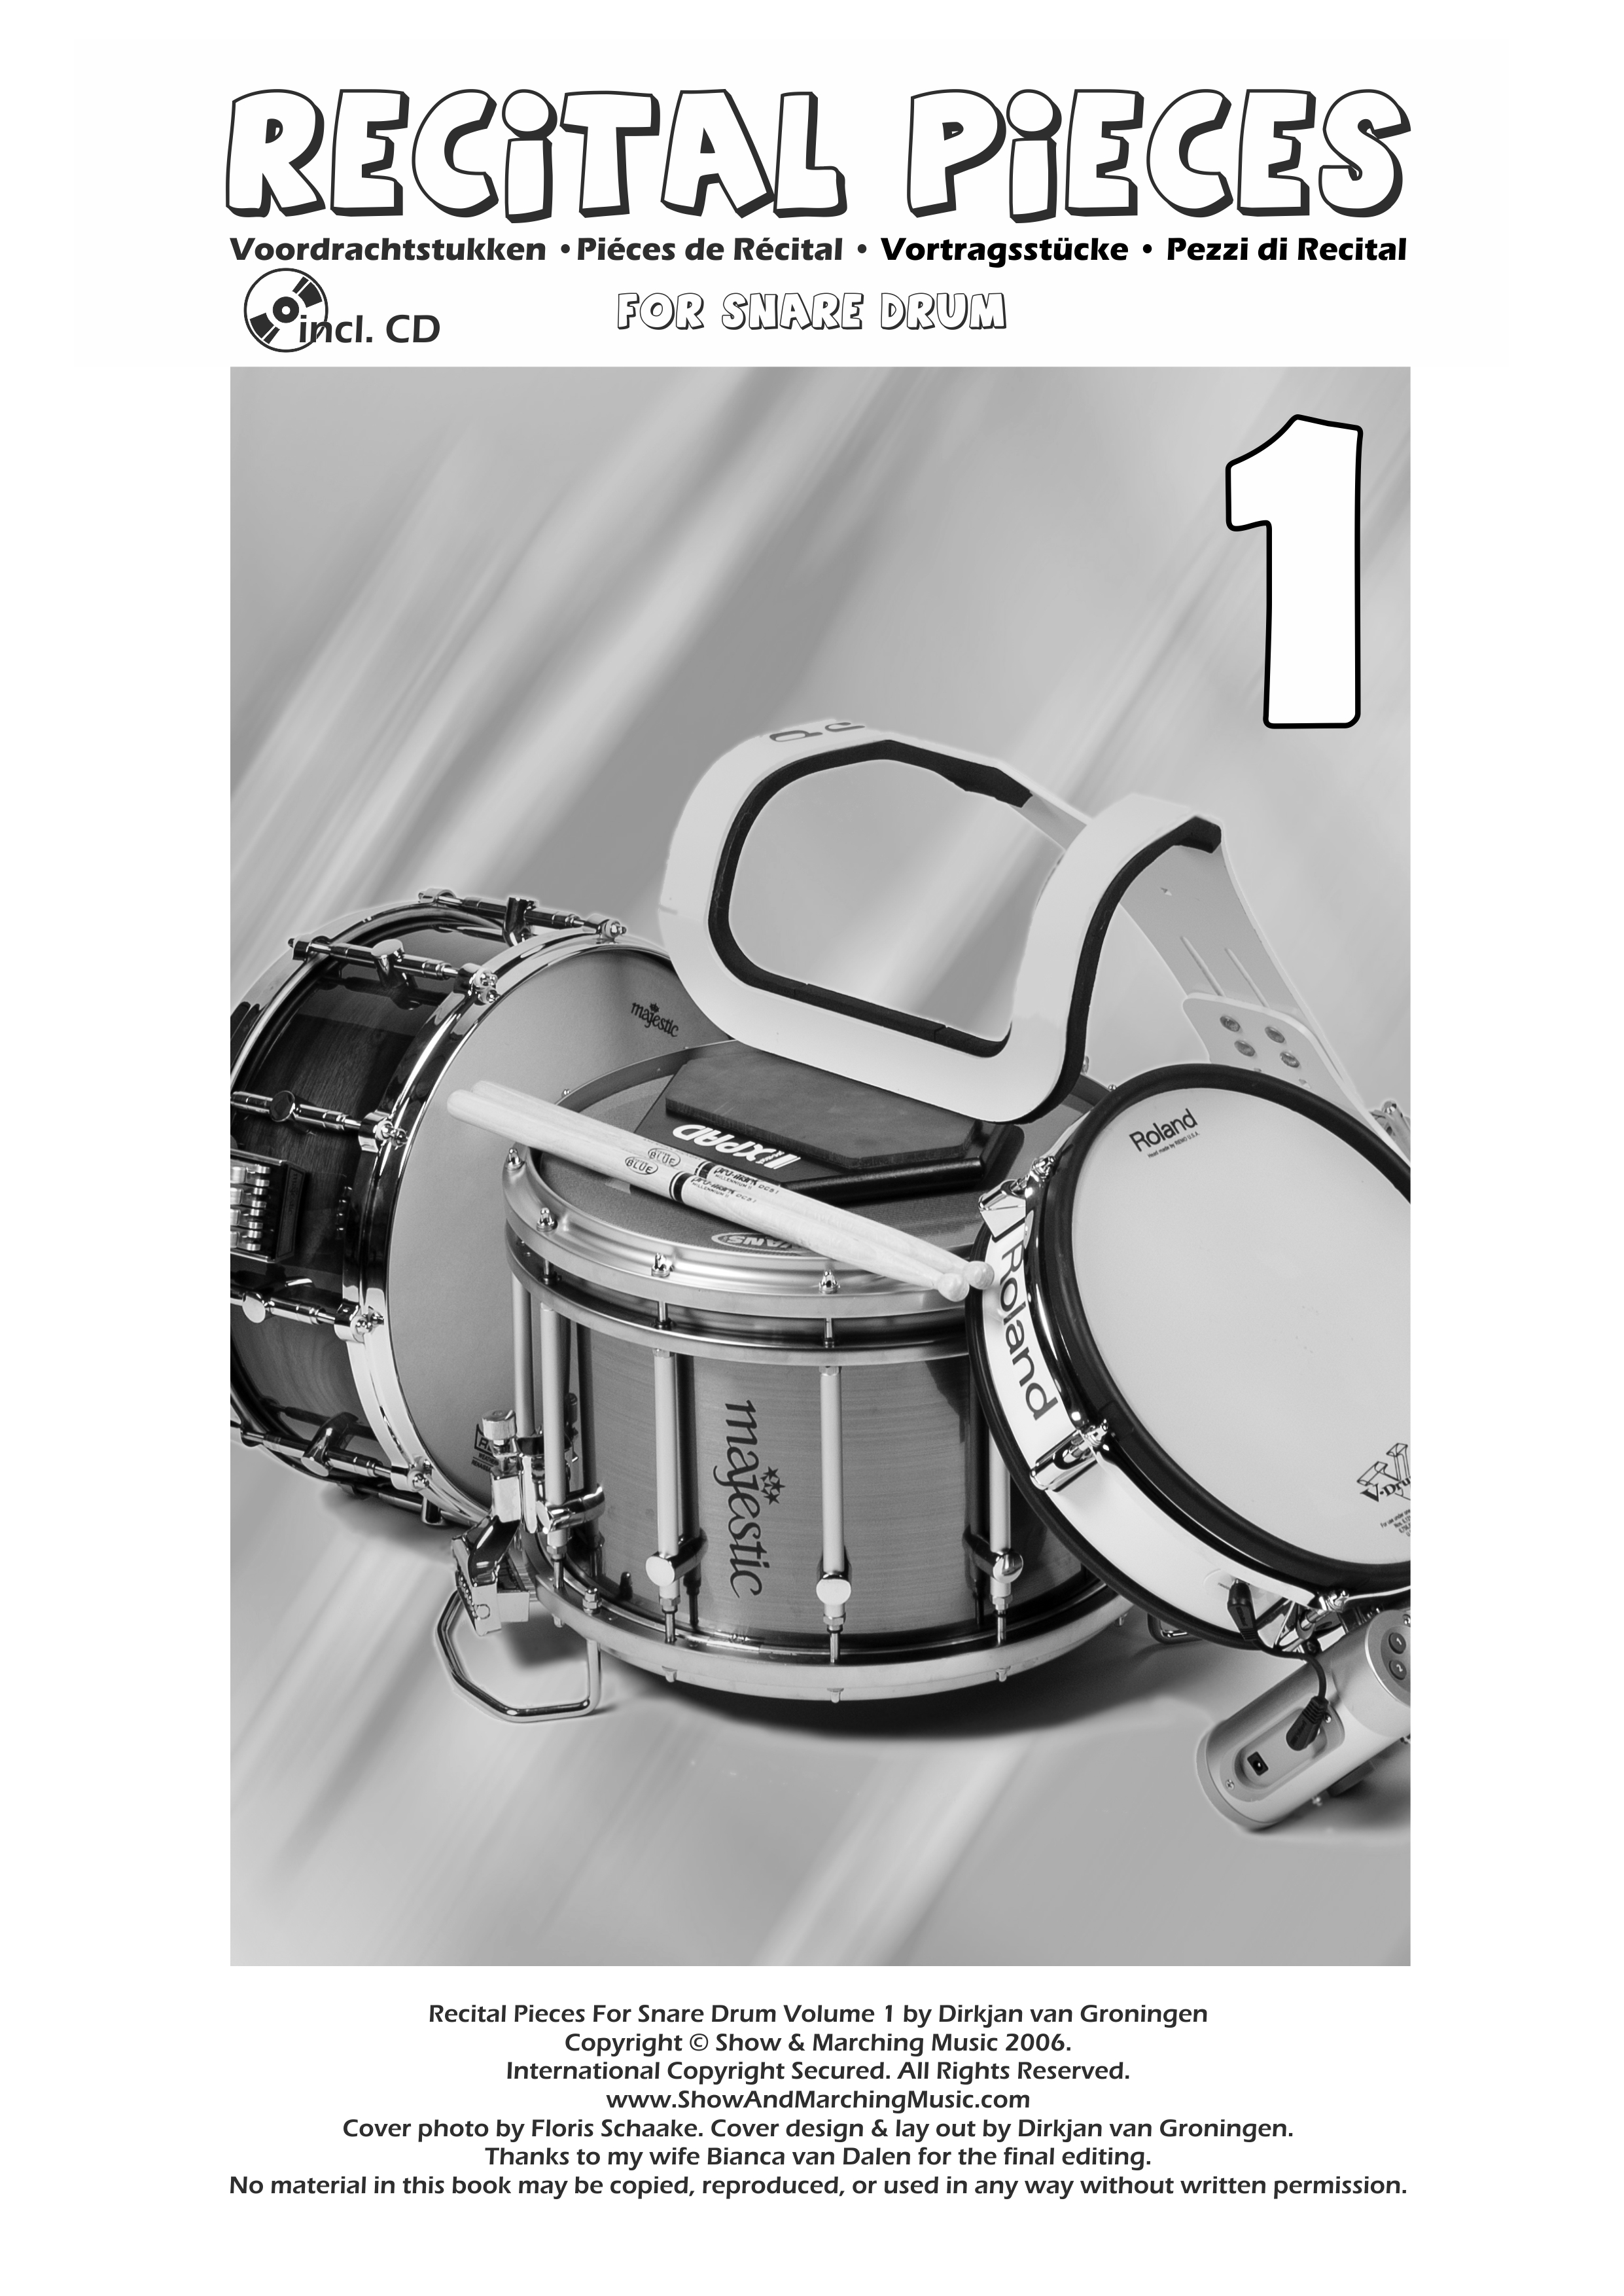 Recital Pieces For Snare Drum 1